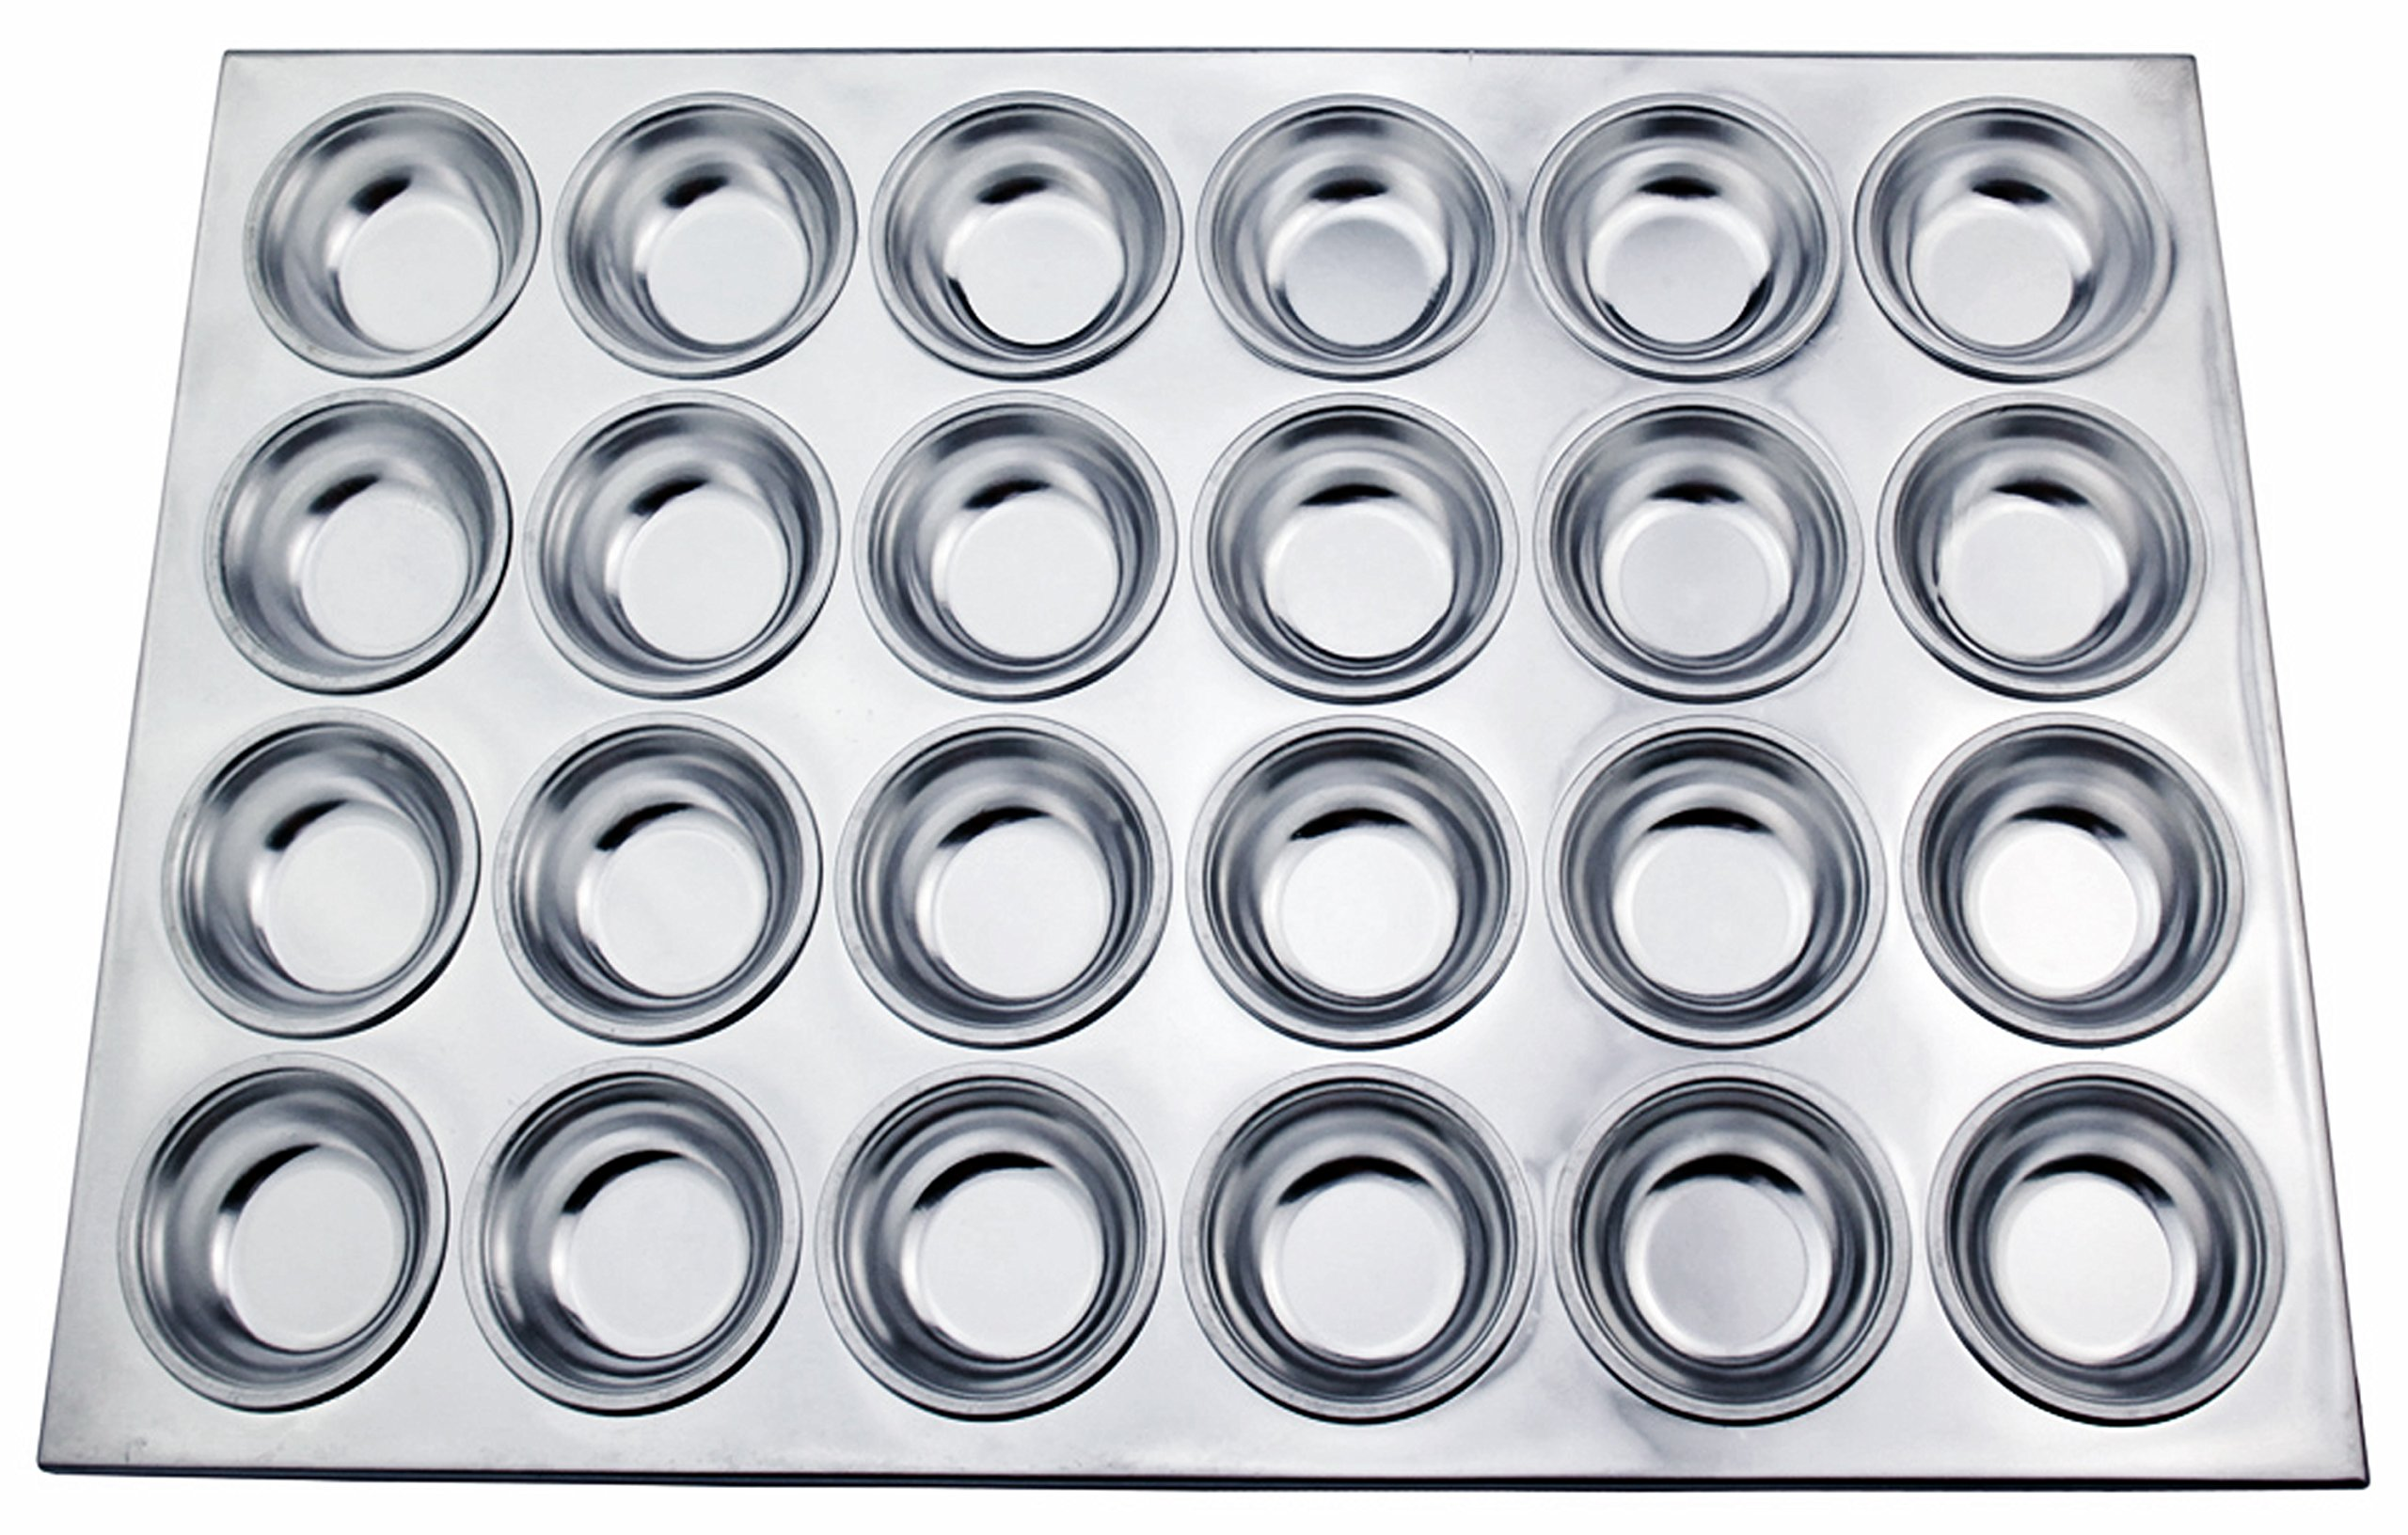 New Star Foodservice 37913 Aluminum Muffin Pan with 24 Cups (Pack of 12)